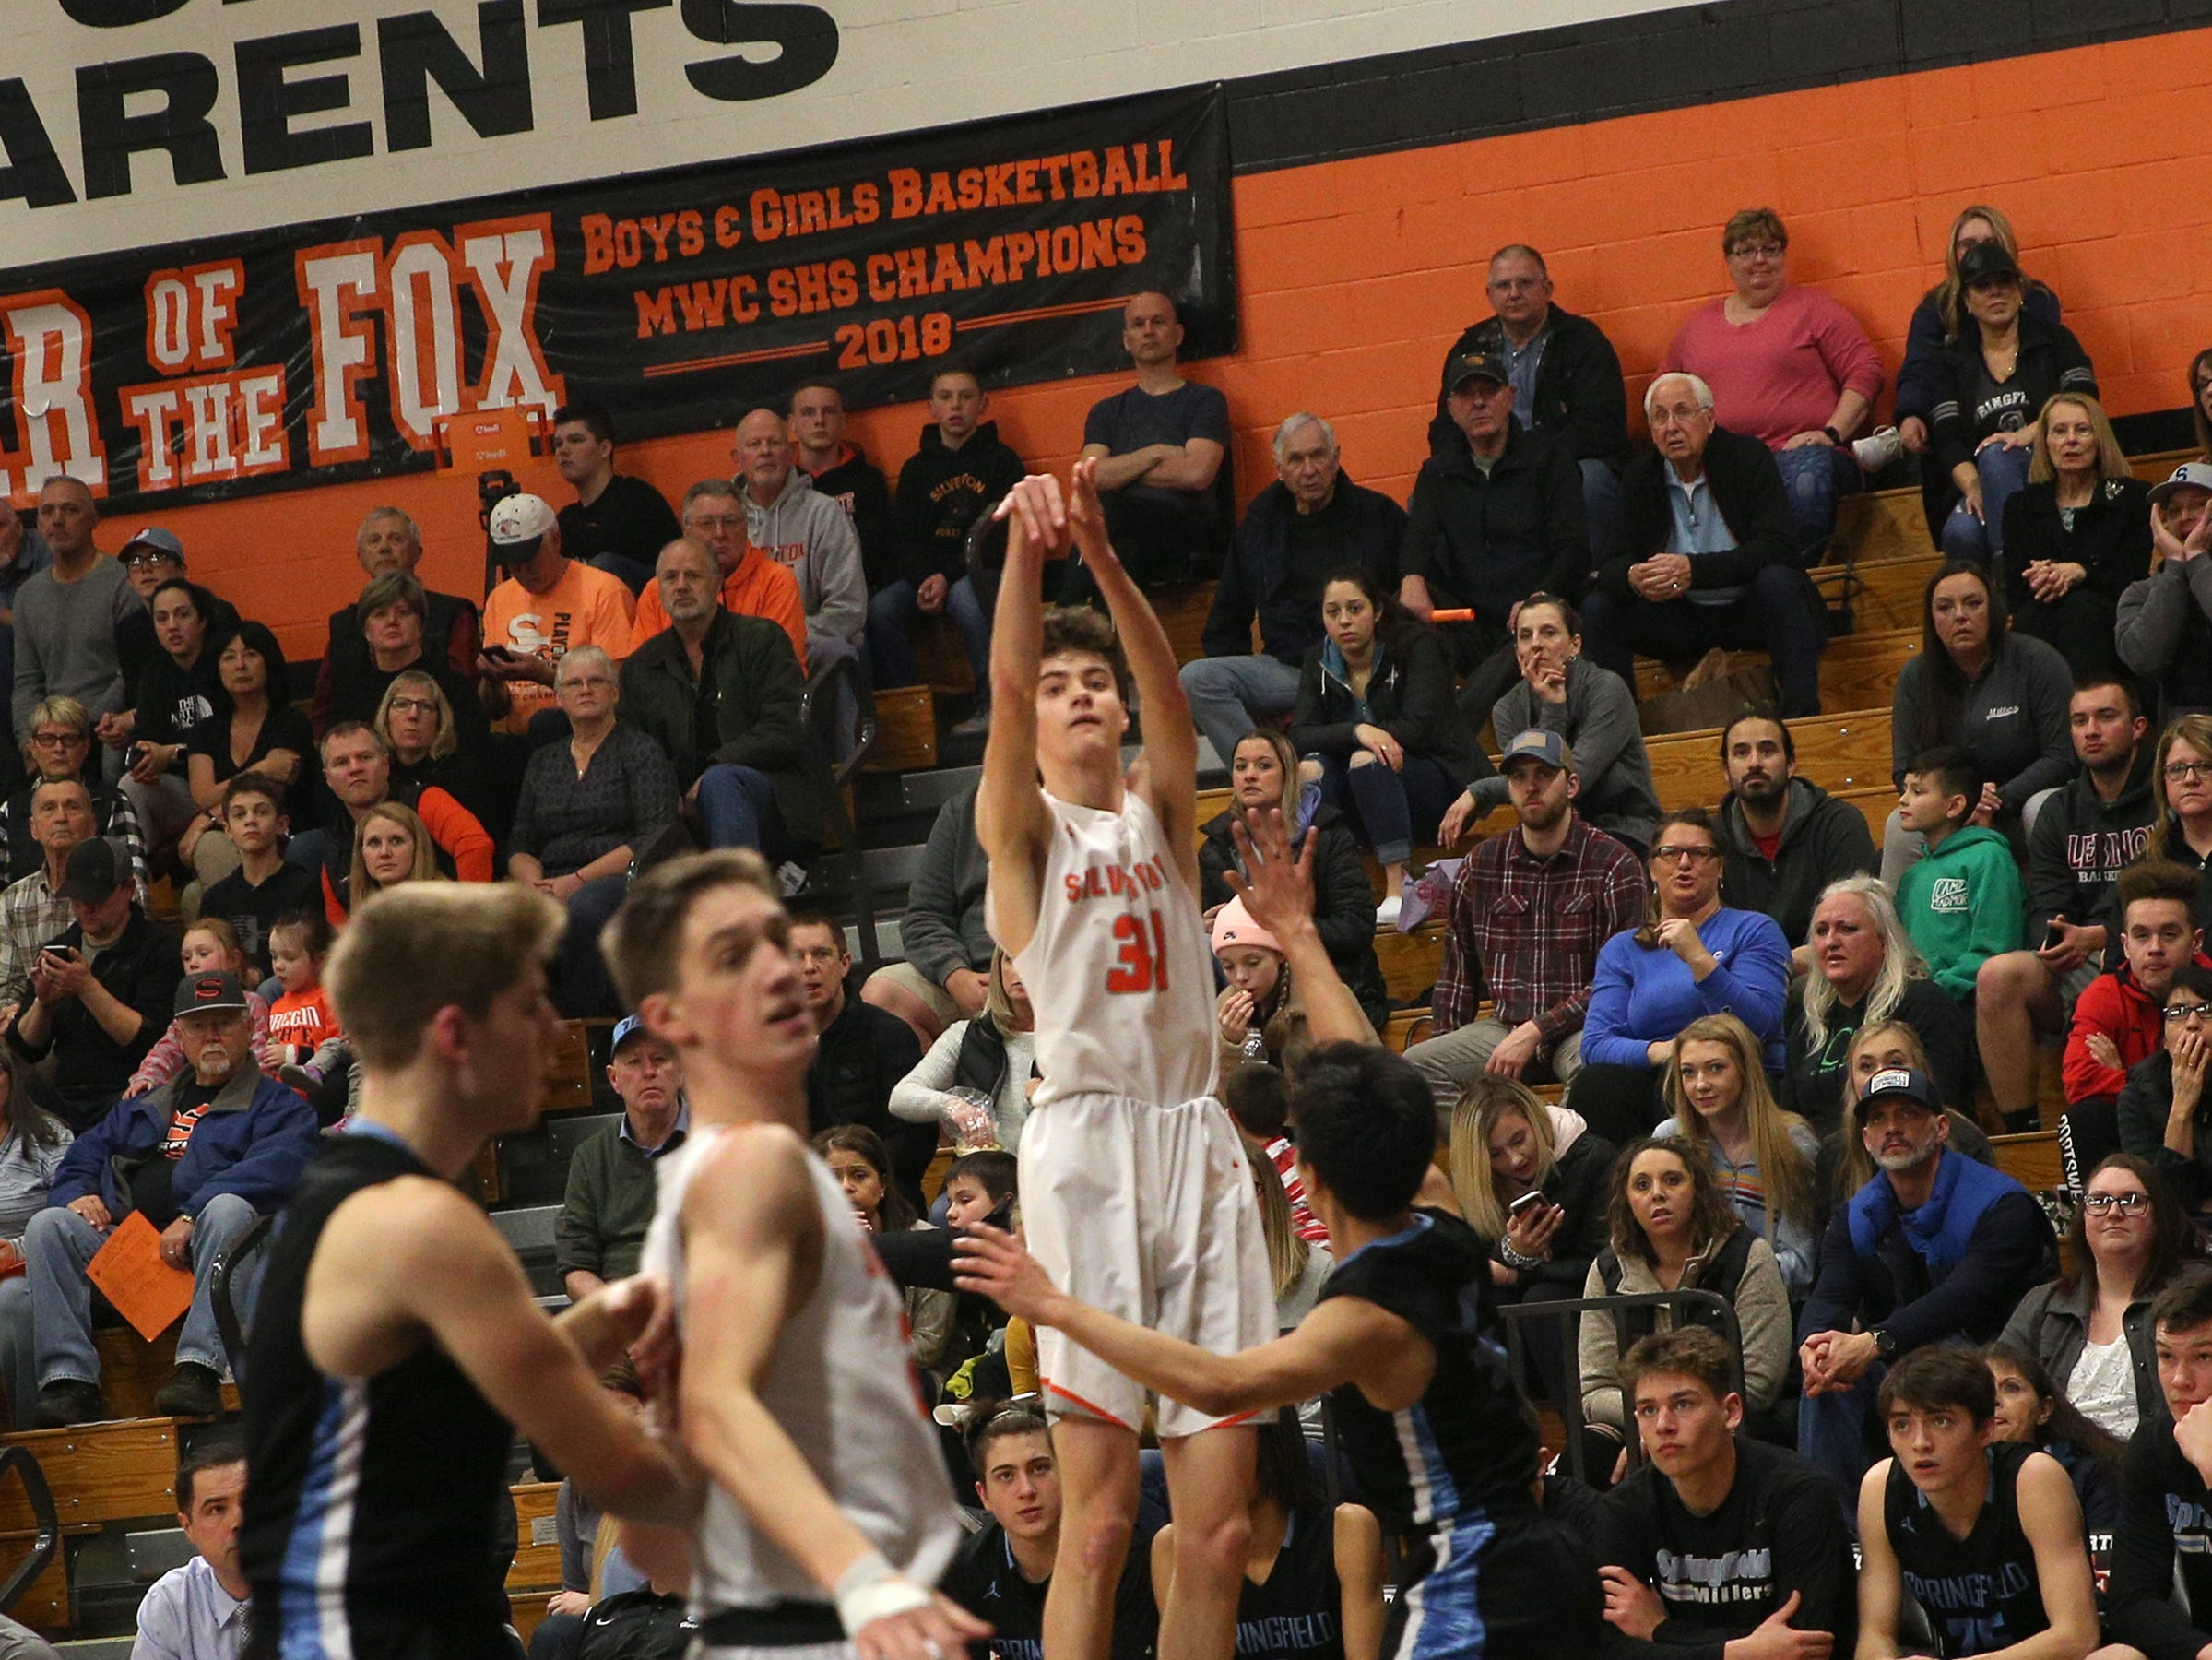 Silverton's Grant Dunn (31) attempts a 3-point shot during the Silverton vs. Springfield boys basketball OSAA state playoffs game at Silverton High School in Silverton on Saturday, March 2, 2019.